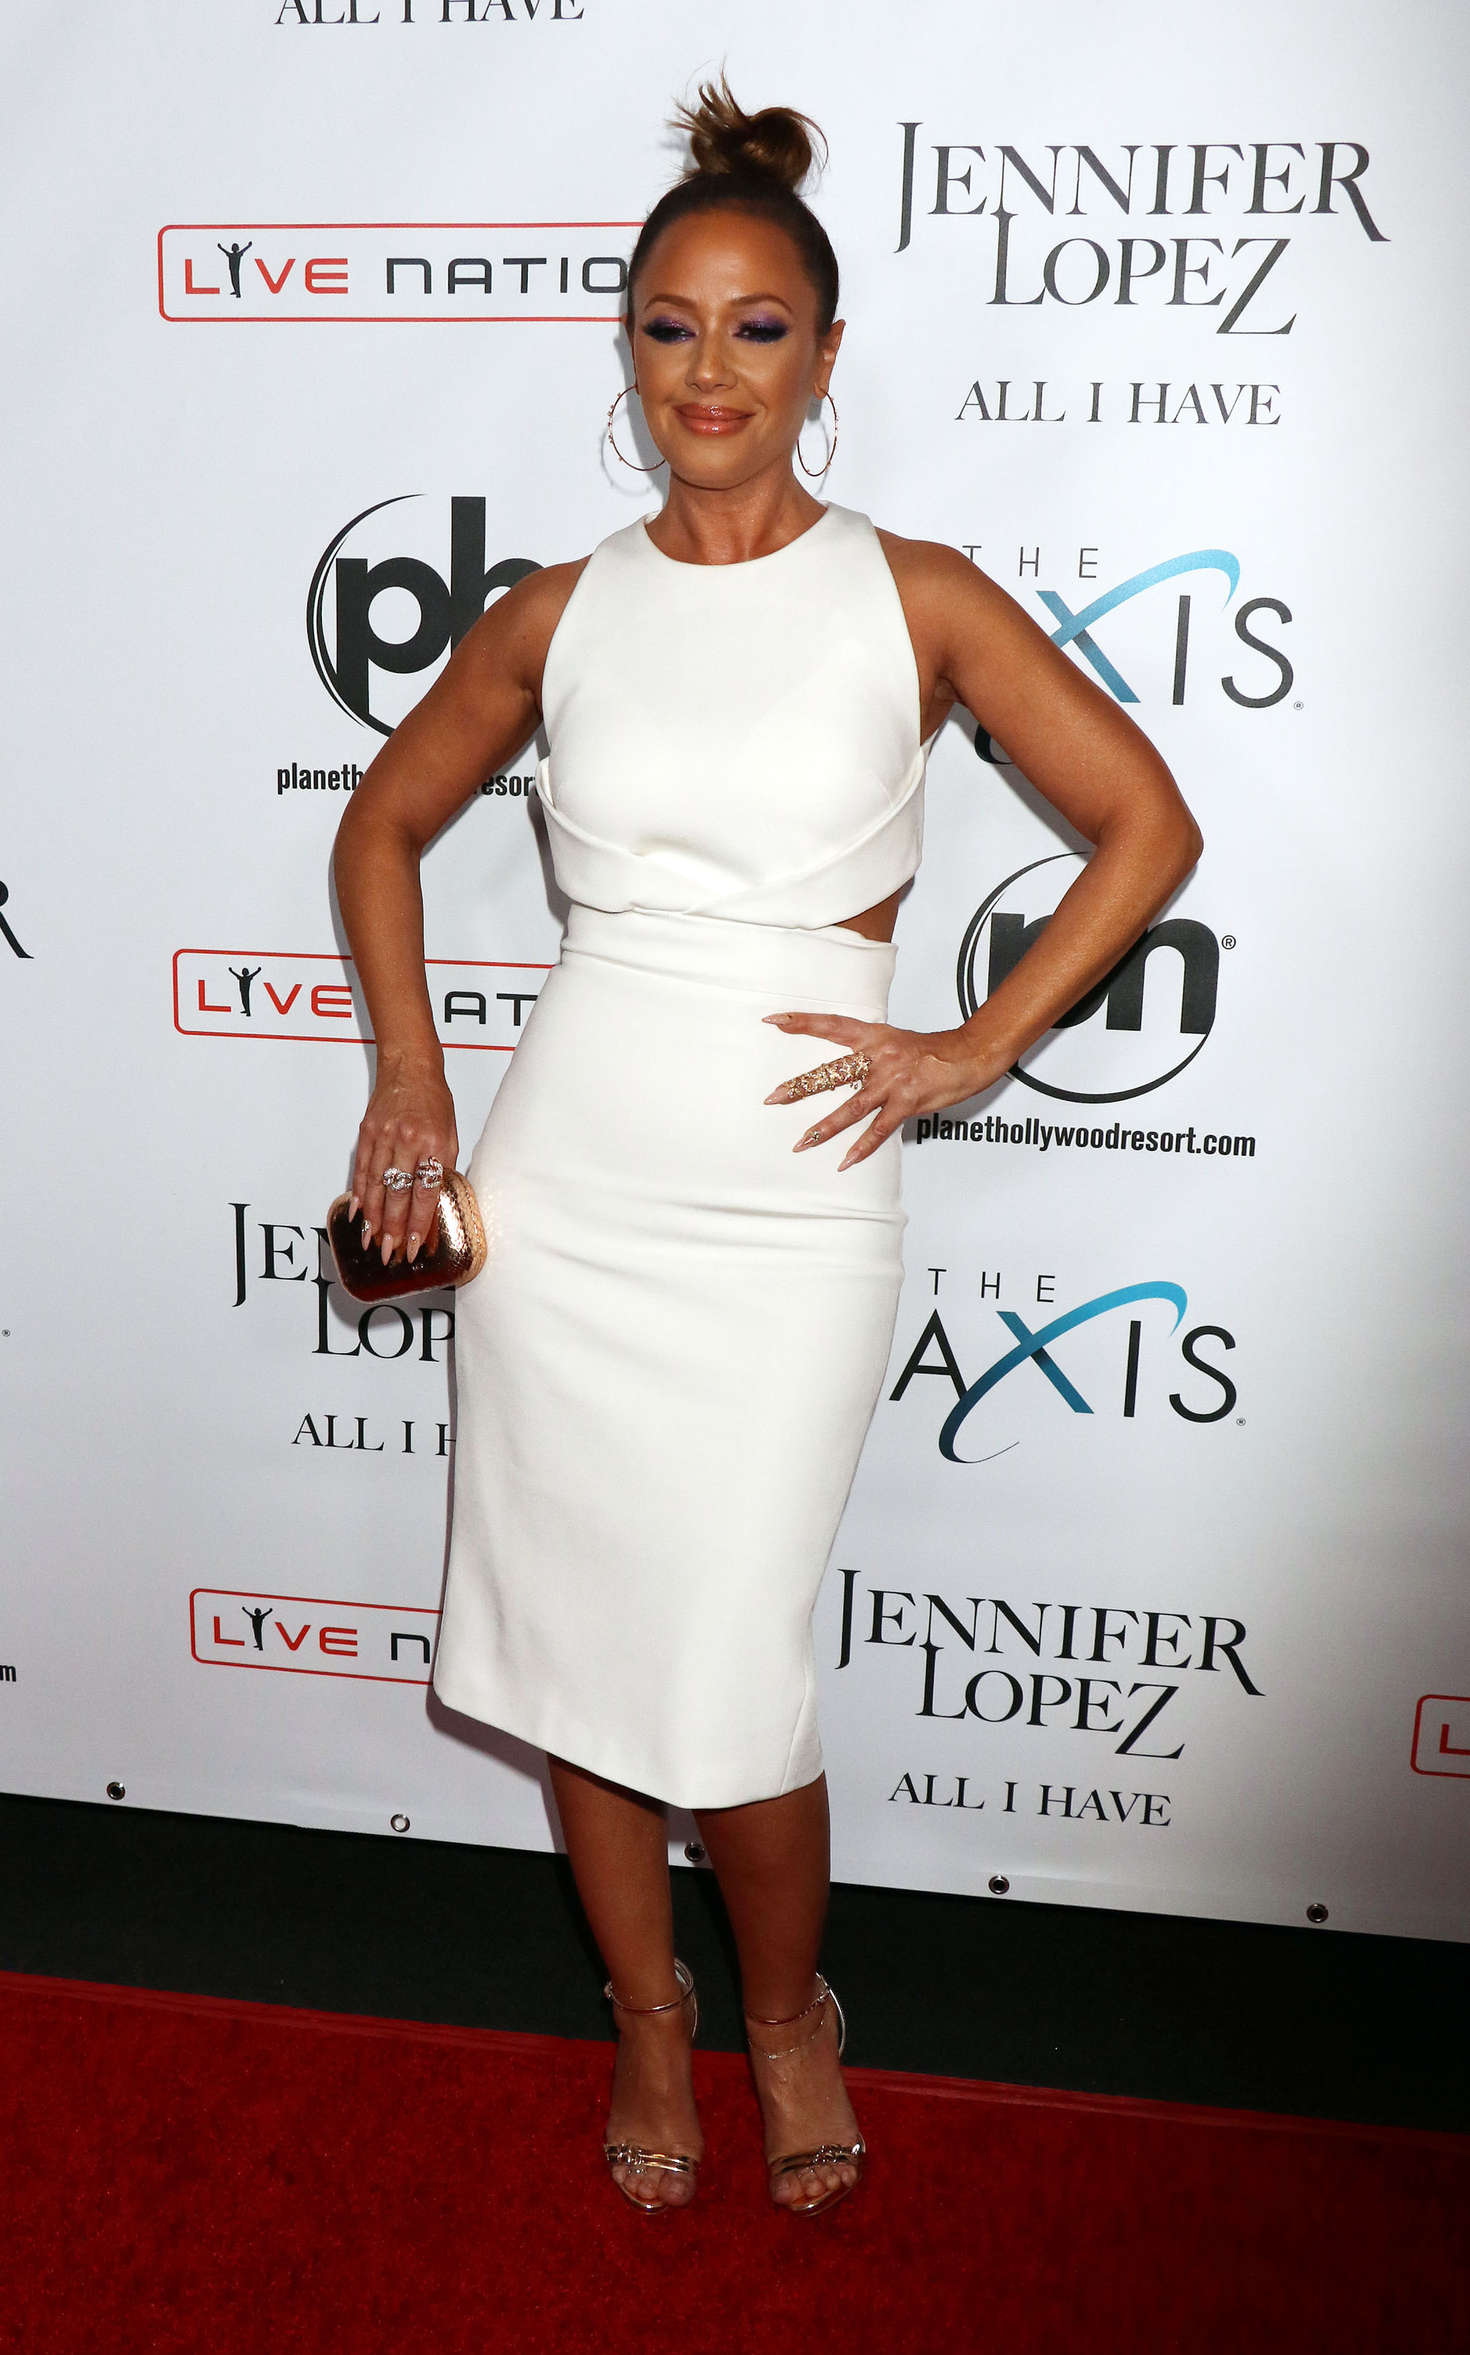 Leah Remini - Opening night of Jennifer Lopez's 'All I Have' Residency in Las Vegas